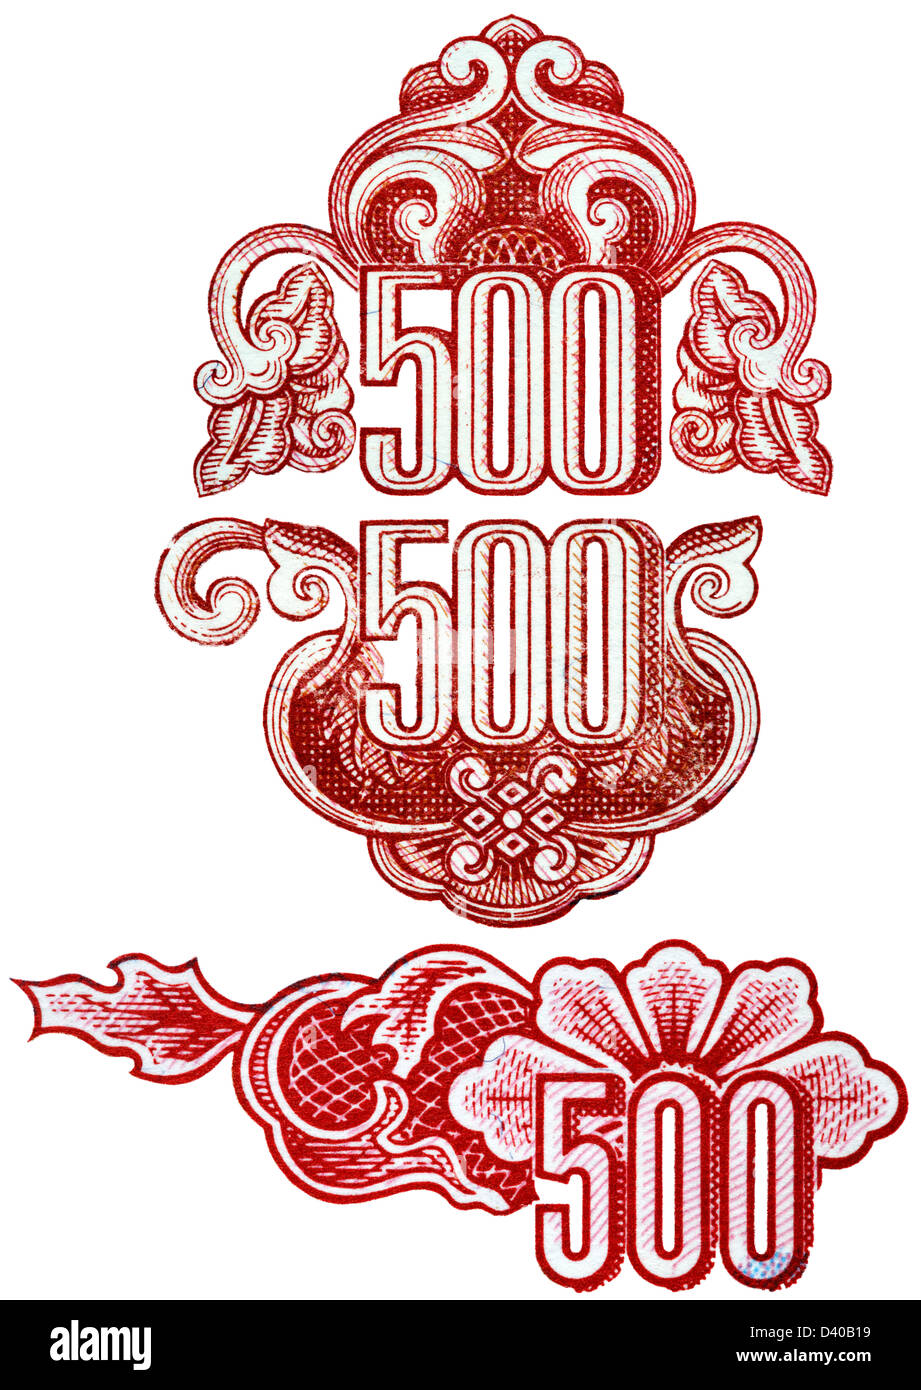 Number 500 from 500 Dong banknote, Vietnam, 1988, on white background - Stock Image